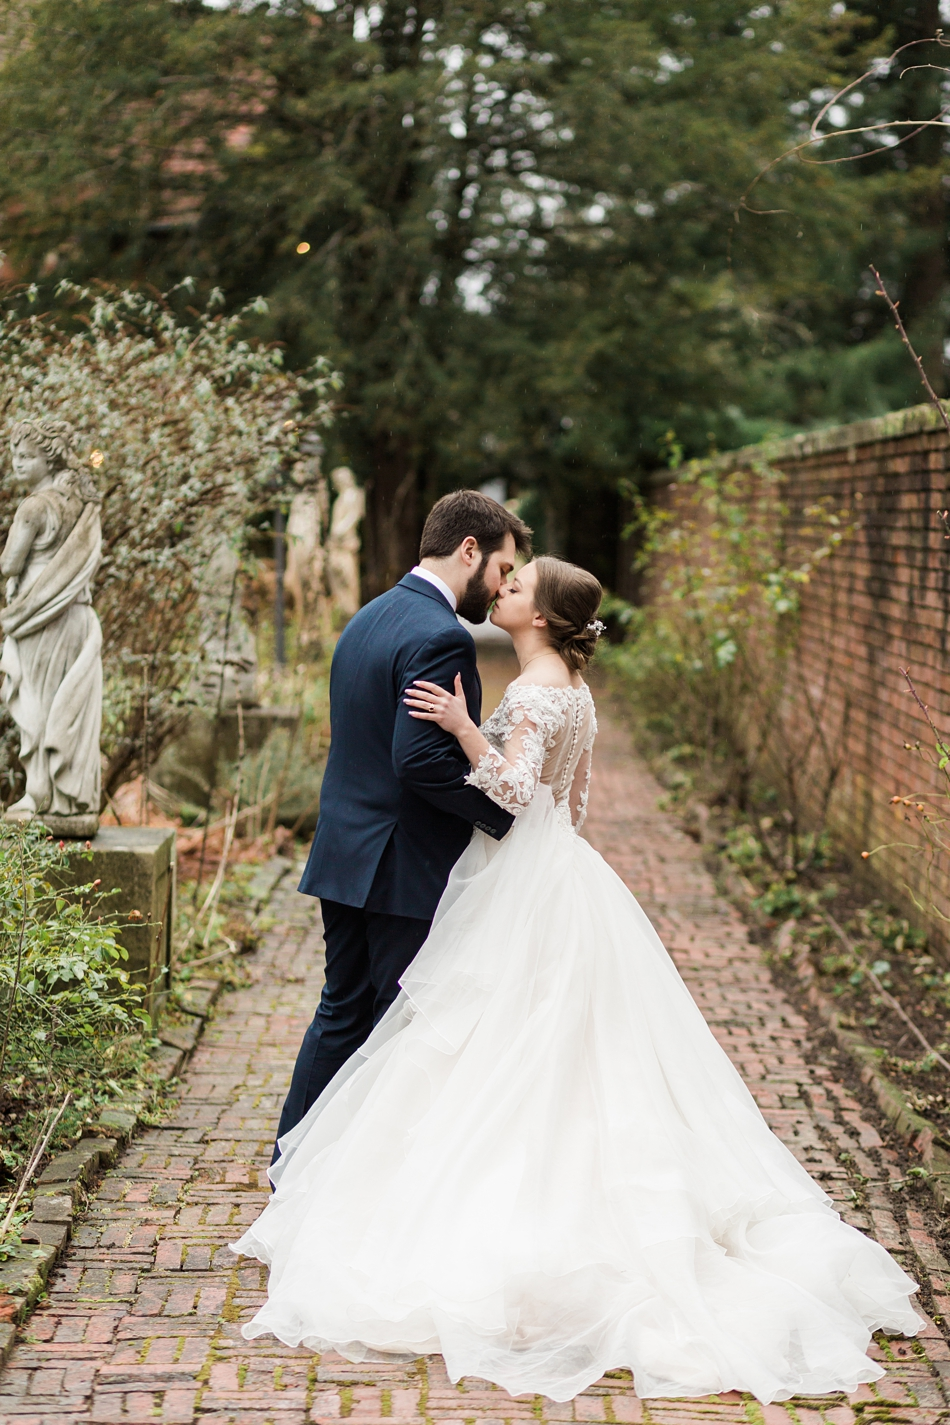 A bride and groom kiss on a brick path after their regal winter wedding at Thornewood Castle in Lakewood, a wedding venue near Seattle, WA. | Joanna Monger Photography | Seattle & Snohomish Wedding Photographer